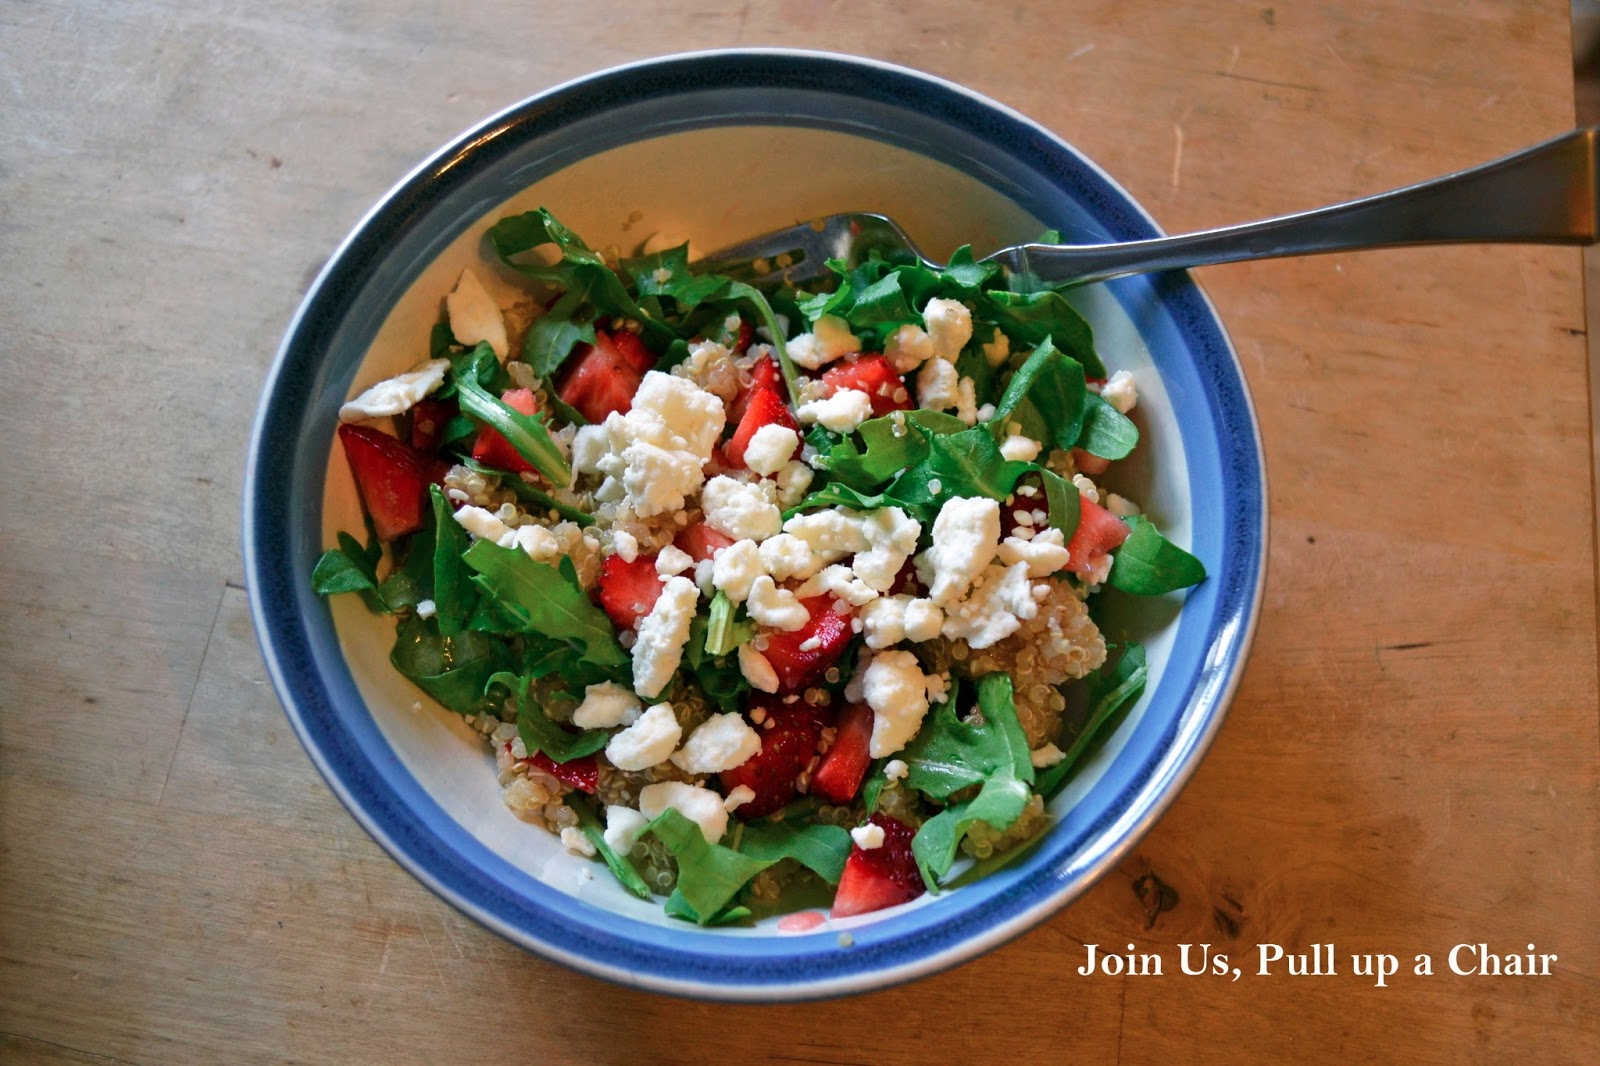 1 Cup Quinoa Dry 2 Cups Water 2 Cups Strawberries Hulled And Chopped 6 Oz Reduced Fat Feta Cheese 1 Cup Chopped Arugula 1 2 Cup Balsamic Vinegar